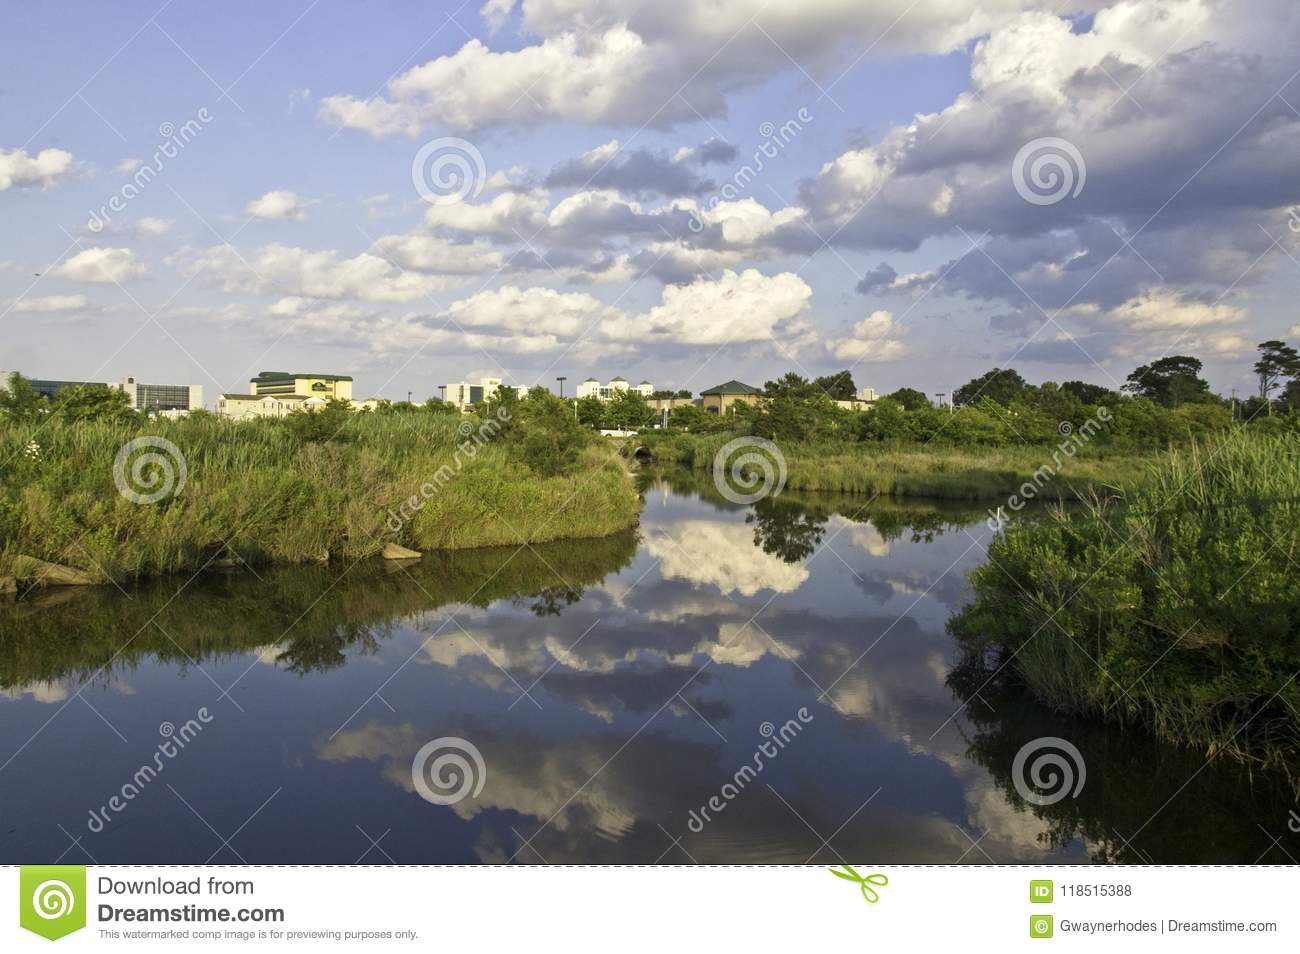 The Lynhhaven Inlet is a Tidal Estuary Located in The City of Virginia Beach, Virginia